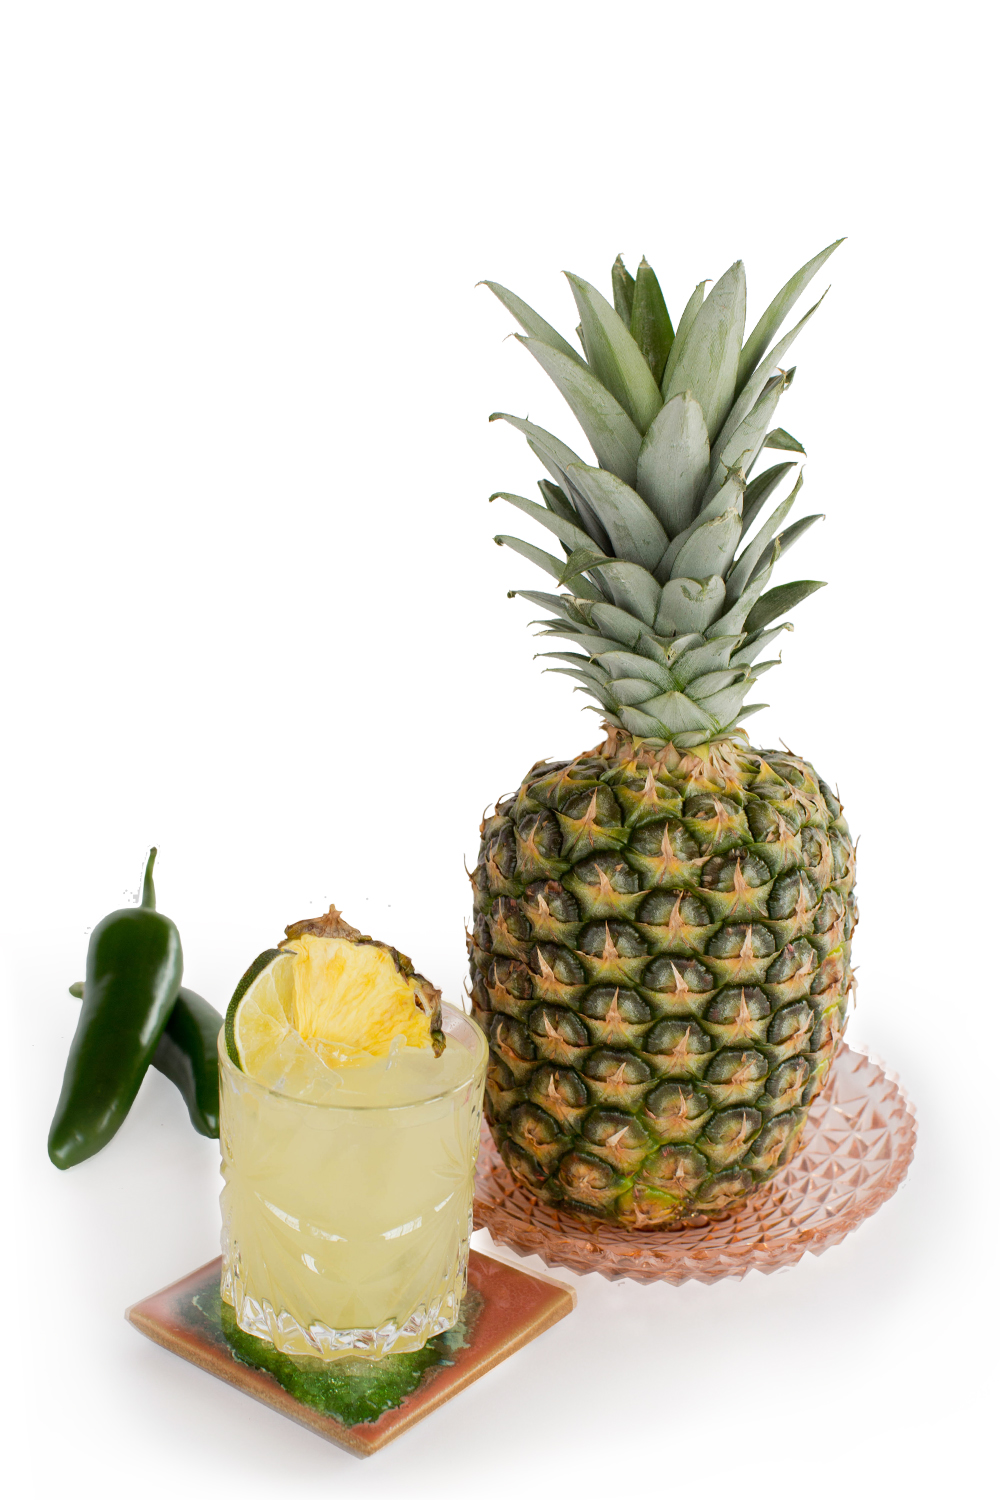 Bindy's Pineapple